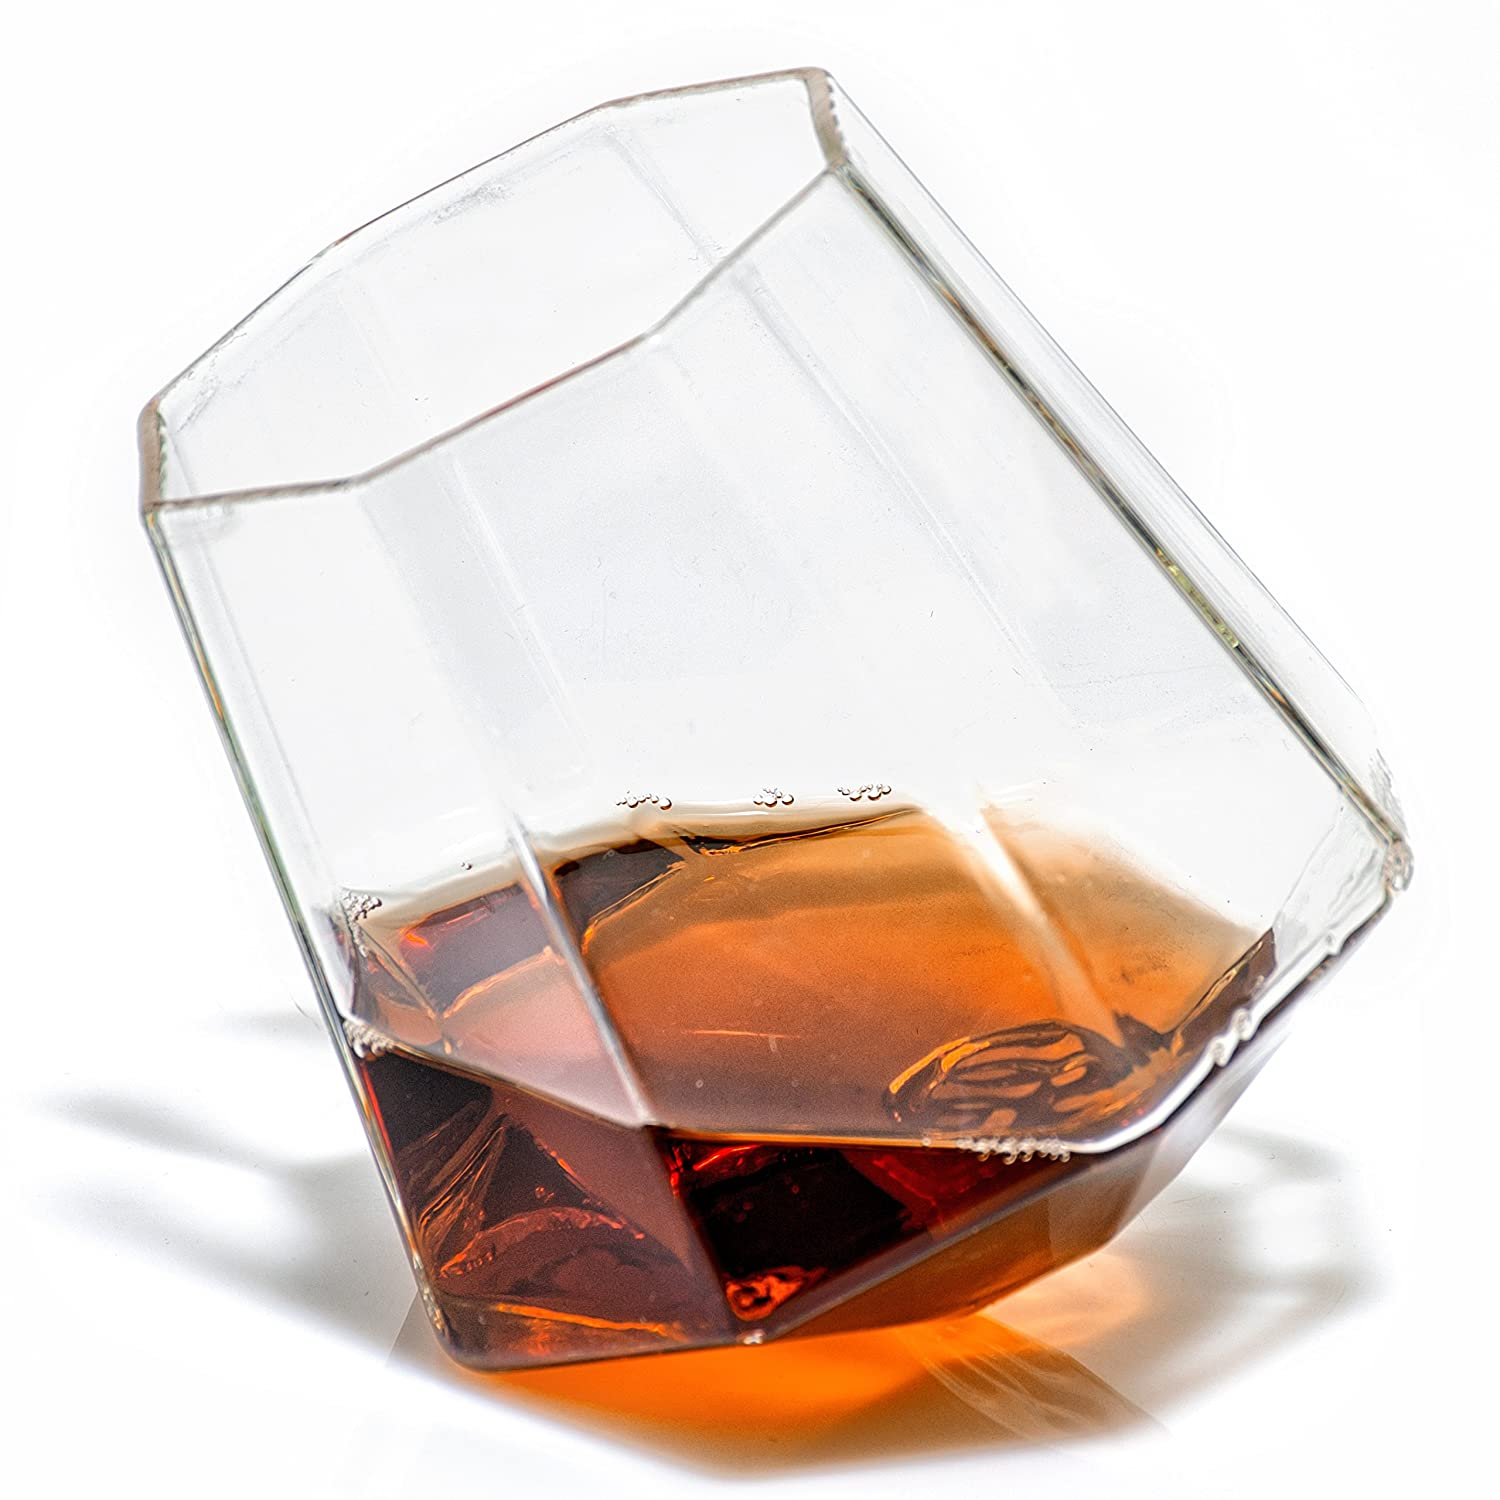 Diamond Shaped Whiskey Glass - 10 oz Unique Rocks Glass for Bourbon, Rum, Tequila, Scotch – Old Fashioned/Rocks Glasses from Prestige Decanters (Set of Two) Father's Day 50% Off Sale BDG175